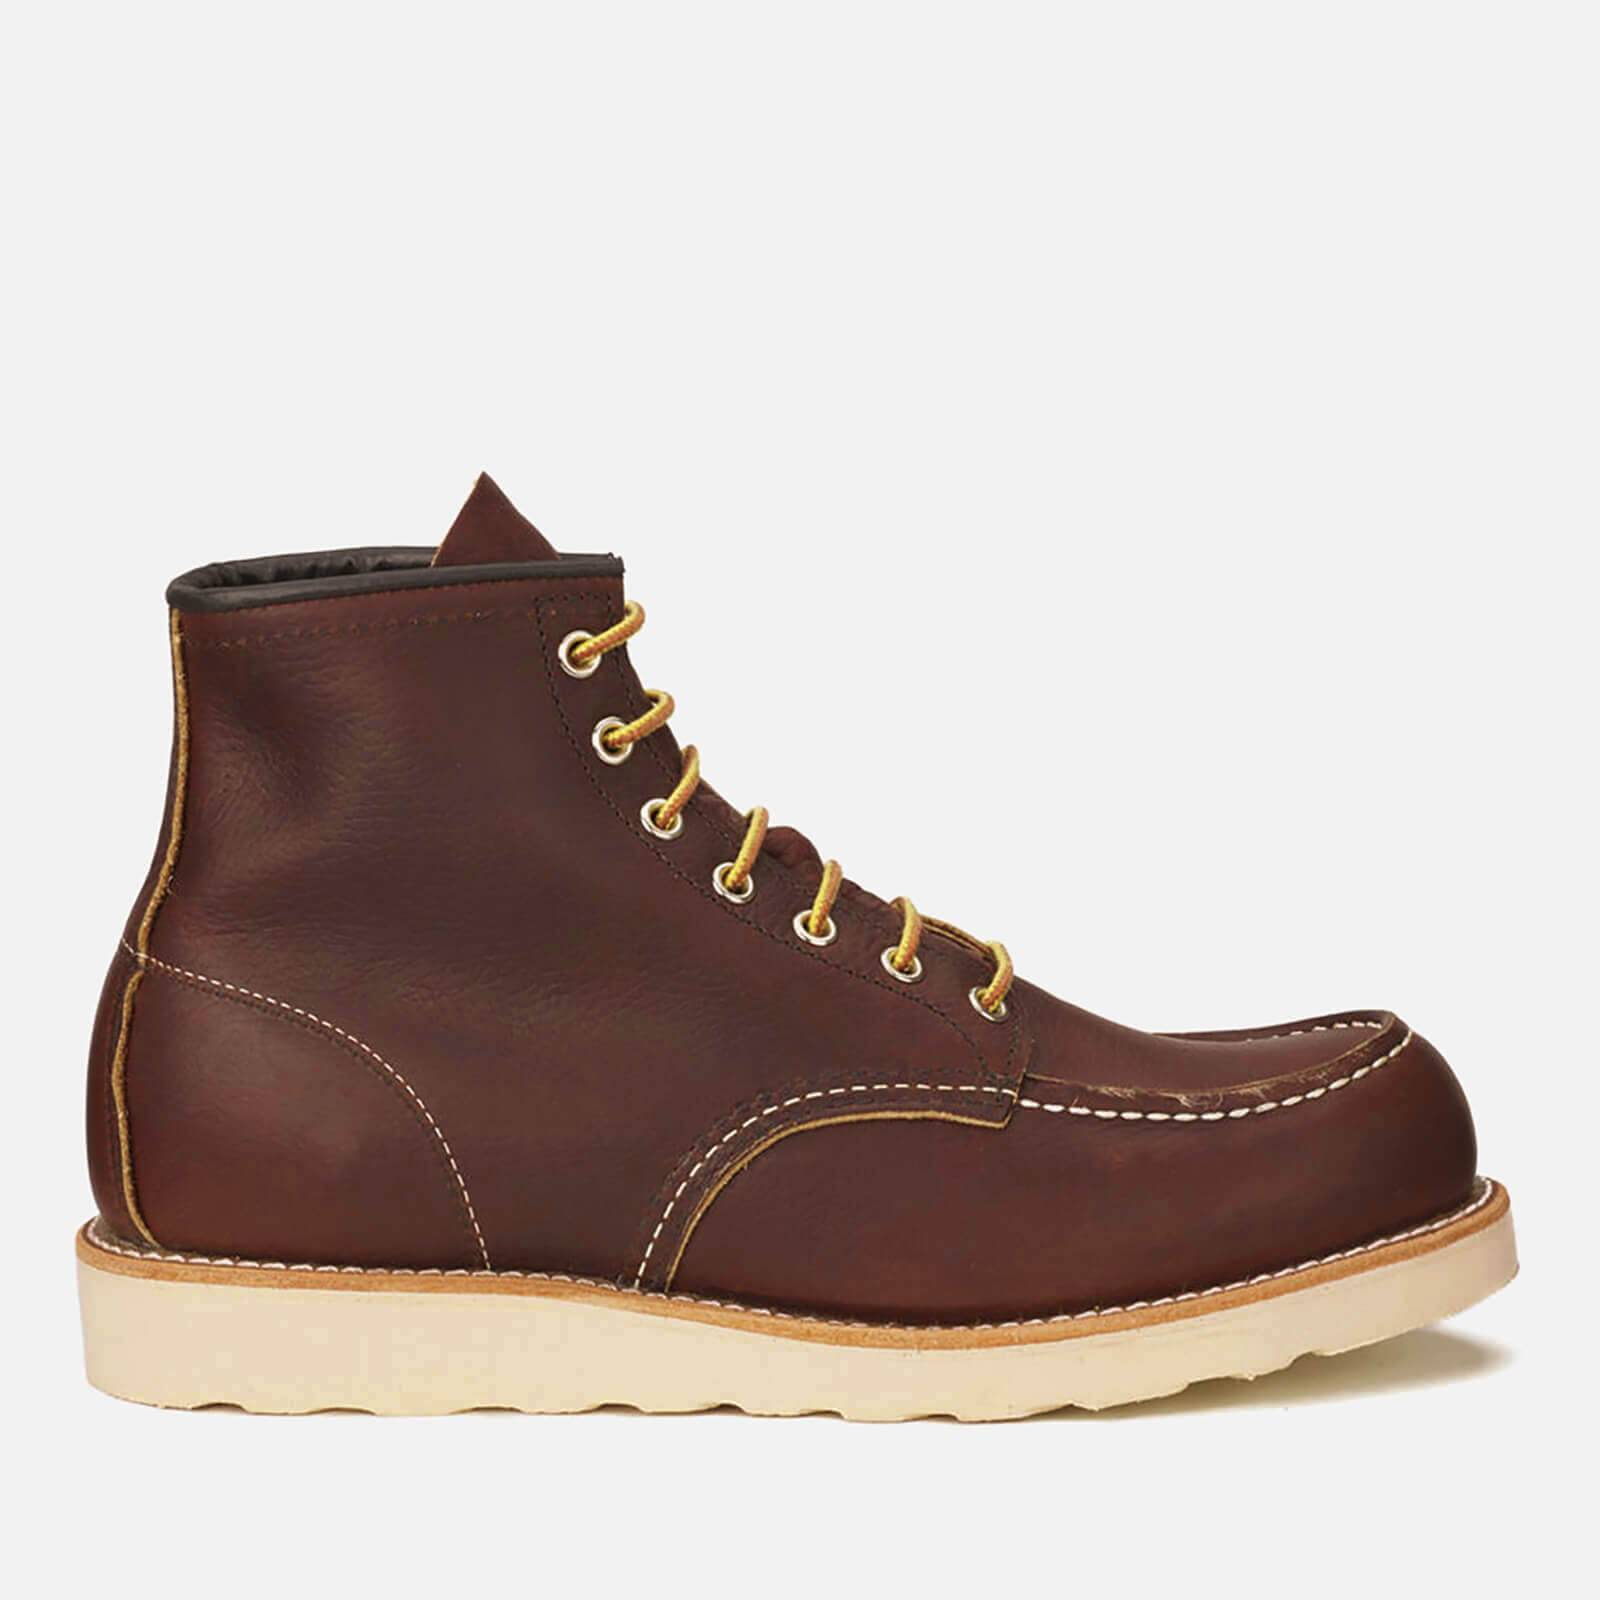 Red Wing Men's 6 Inch Moc Toe Leather Lace Up Boots - Briar Oil Slick - UK 9/US 10